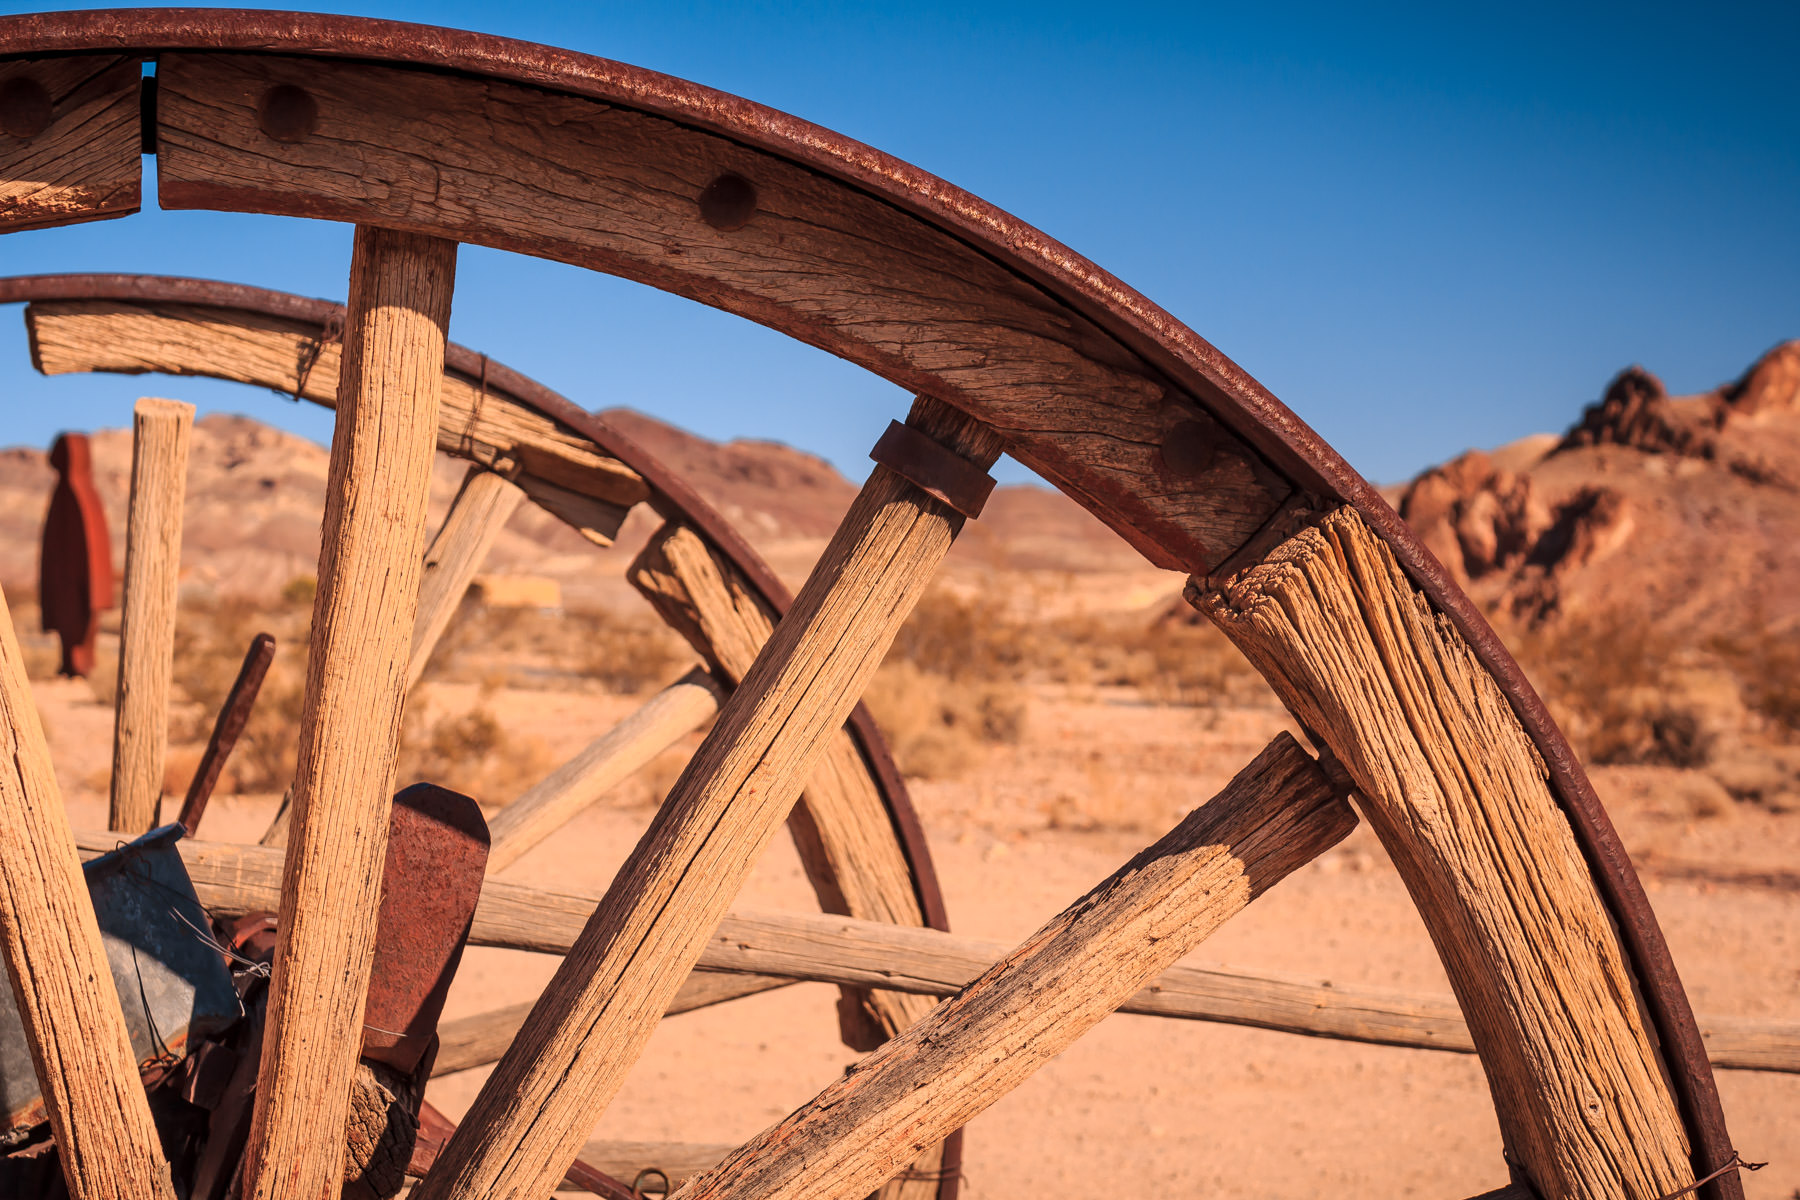 Wagon wheels spotted in the ghost town of Rhyolite, Nevada.